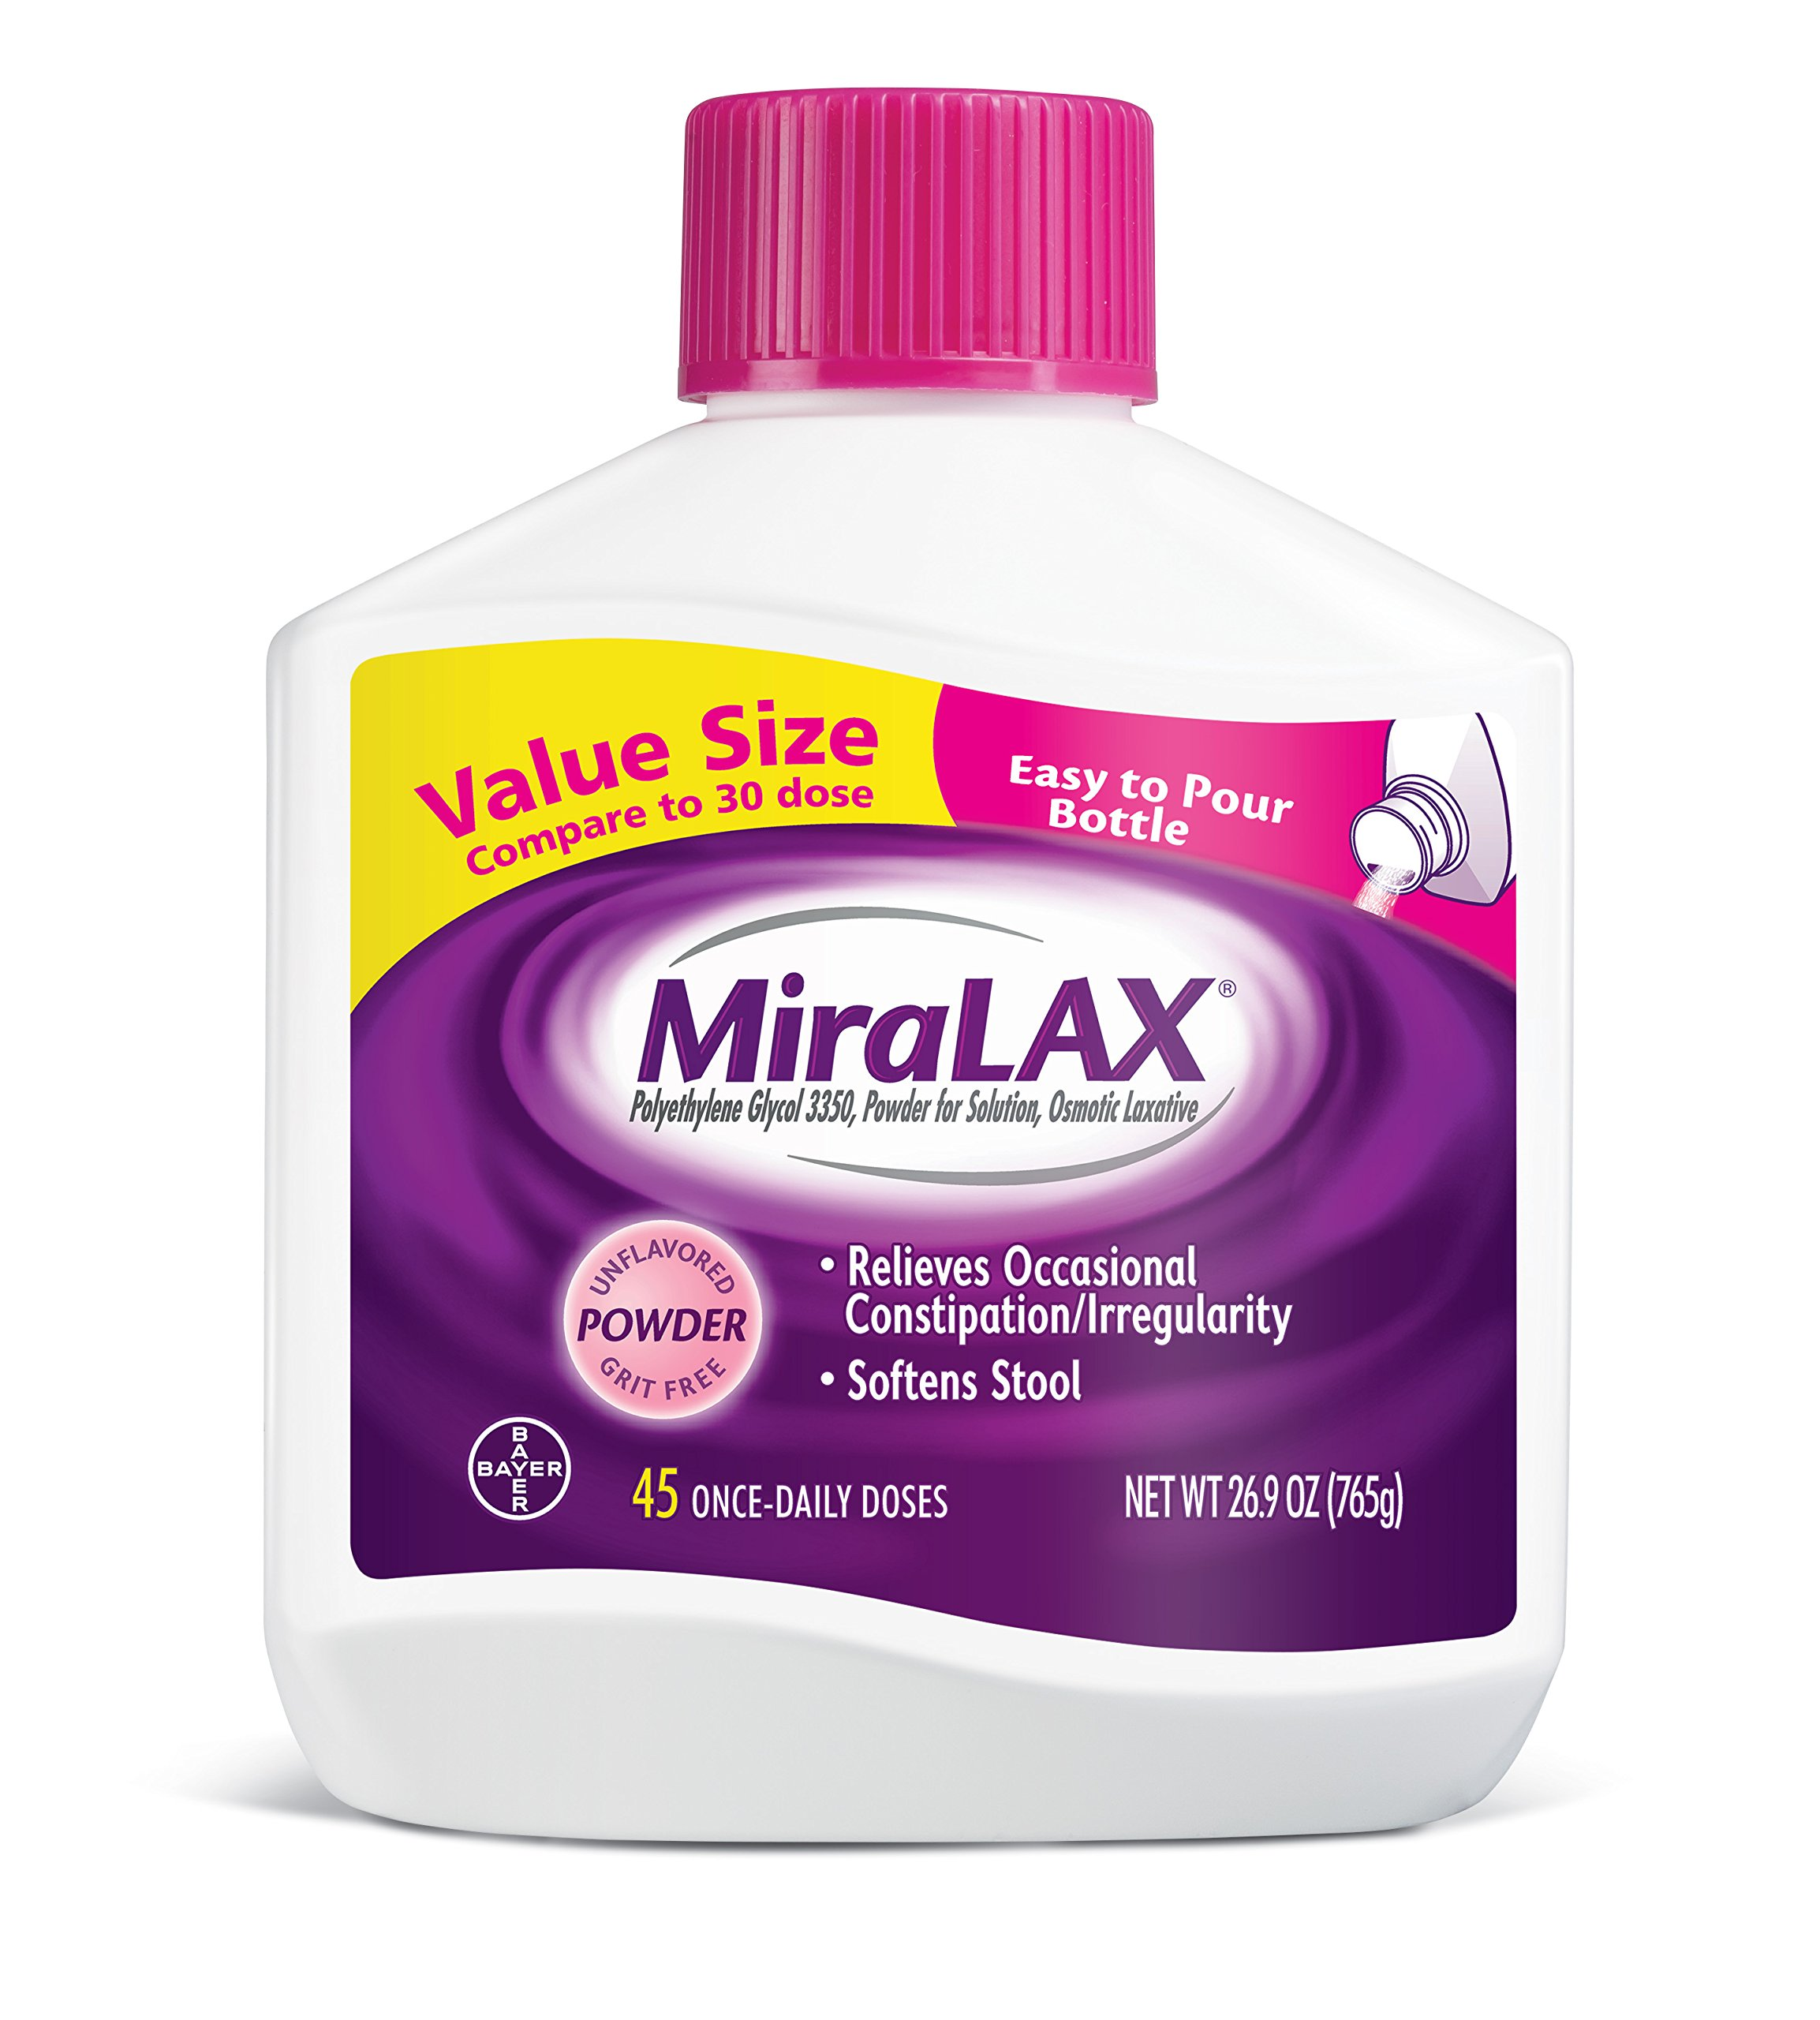 MiraLAX Laxative Powder for Gentle Constipation Relief, #1 Dr. Recommended Brand, 45 Dose Polyethylene Glycol 3350, stimulant-free, softens stool by Miralax